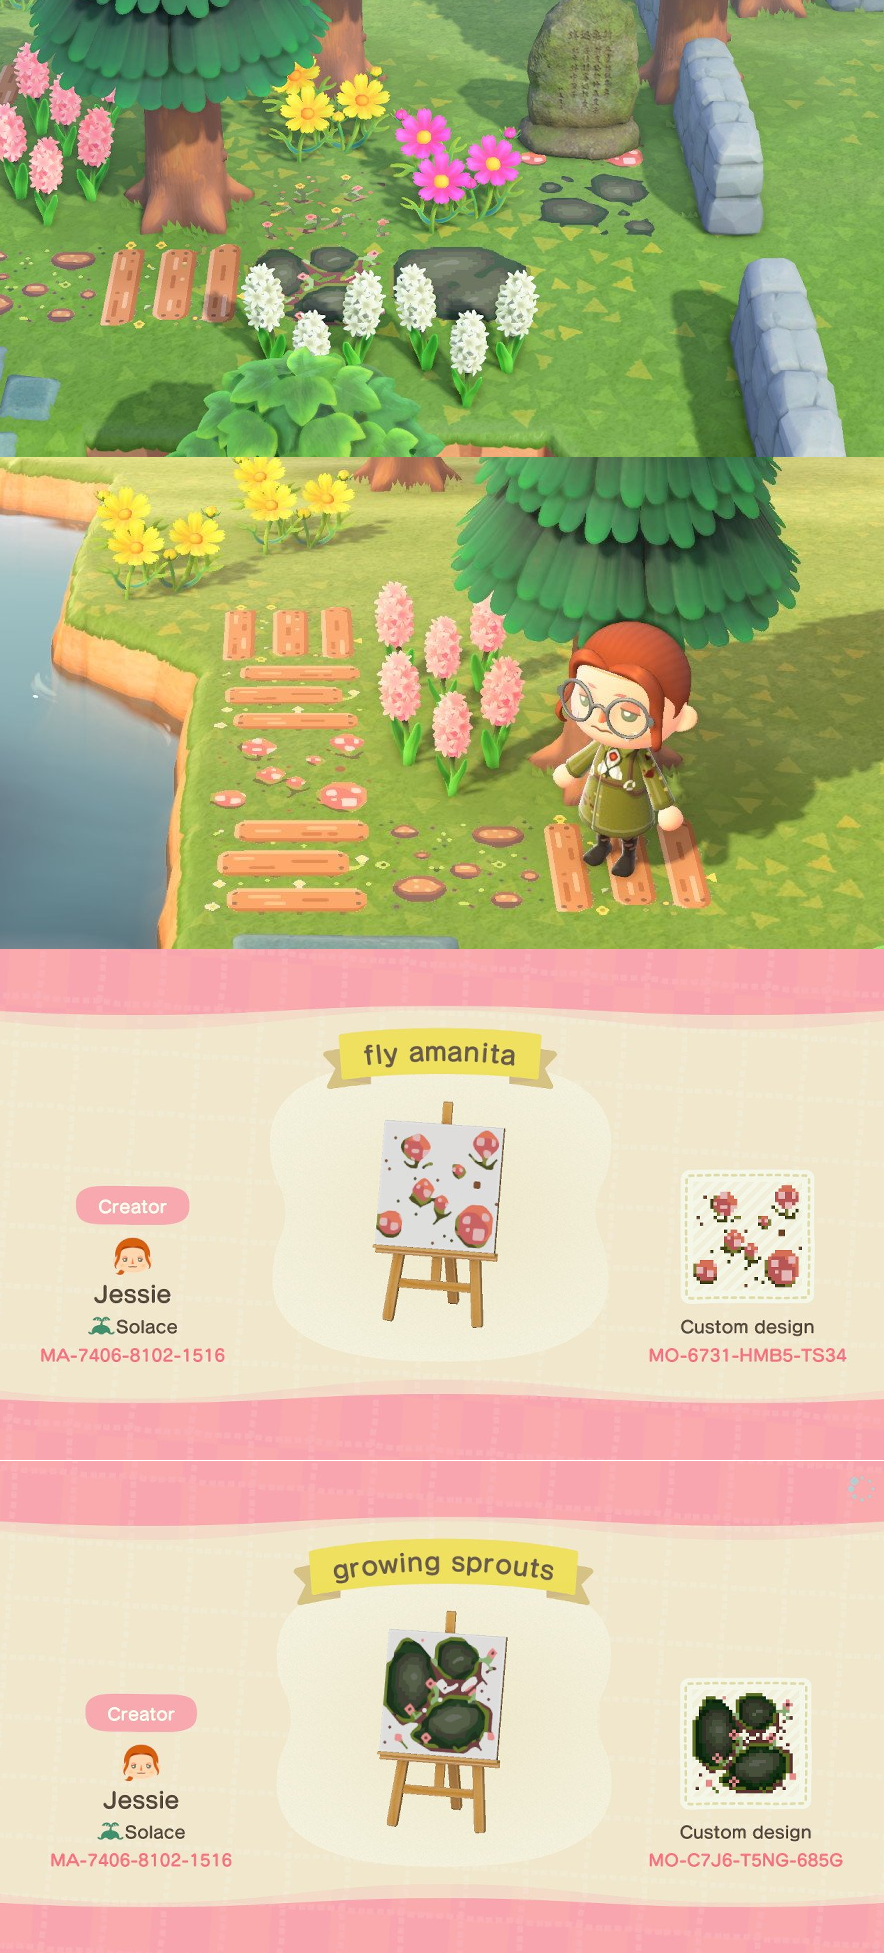 I Made Some Nature Plank Rock Pathing Objects For My Own Mossy Garden Might As Well Share Here Animal Crossing New Animal Crossing Animal Crossing Wild World